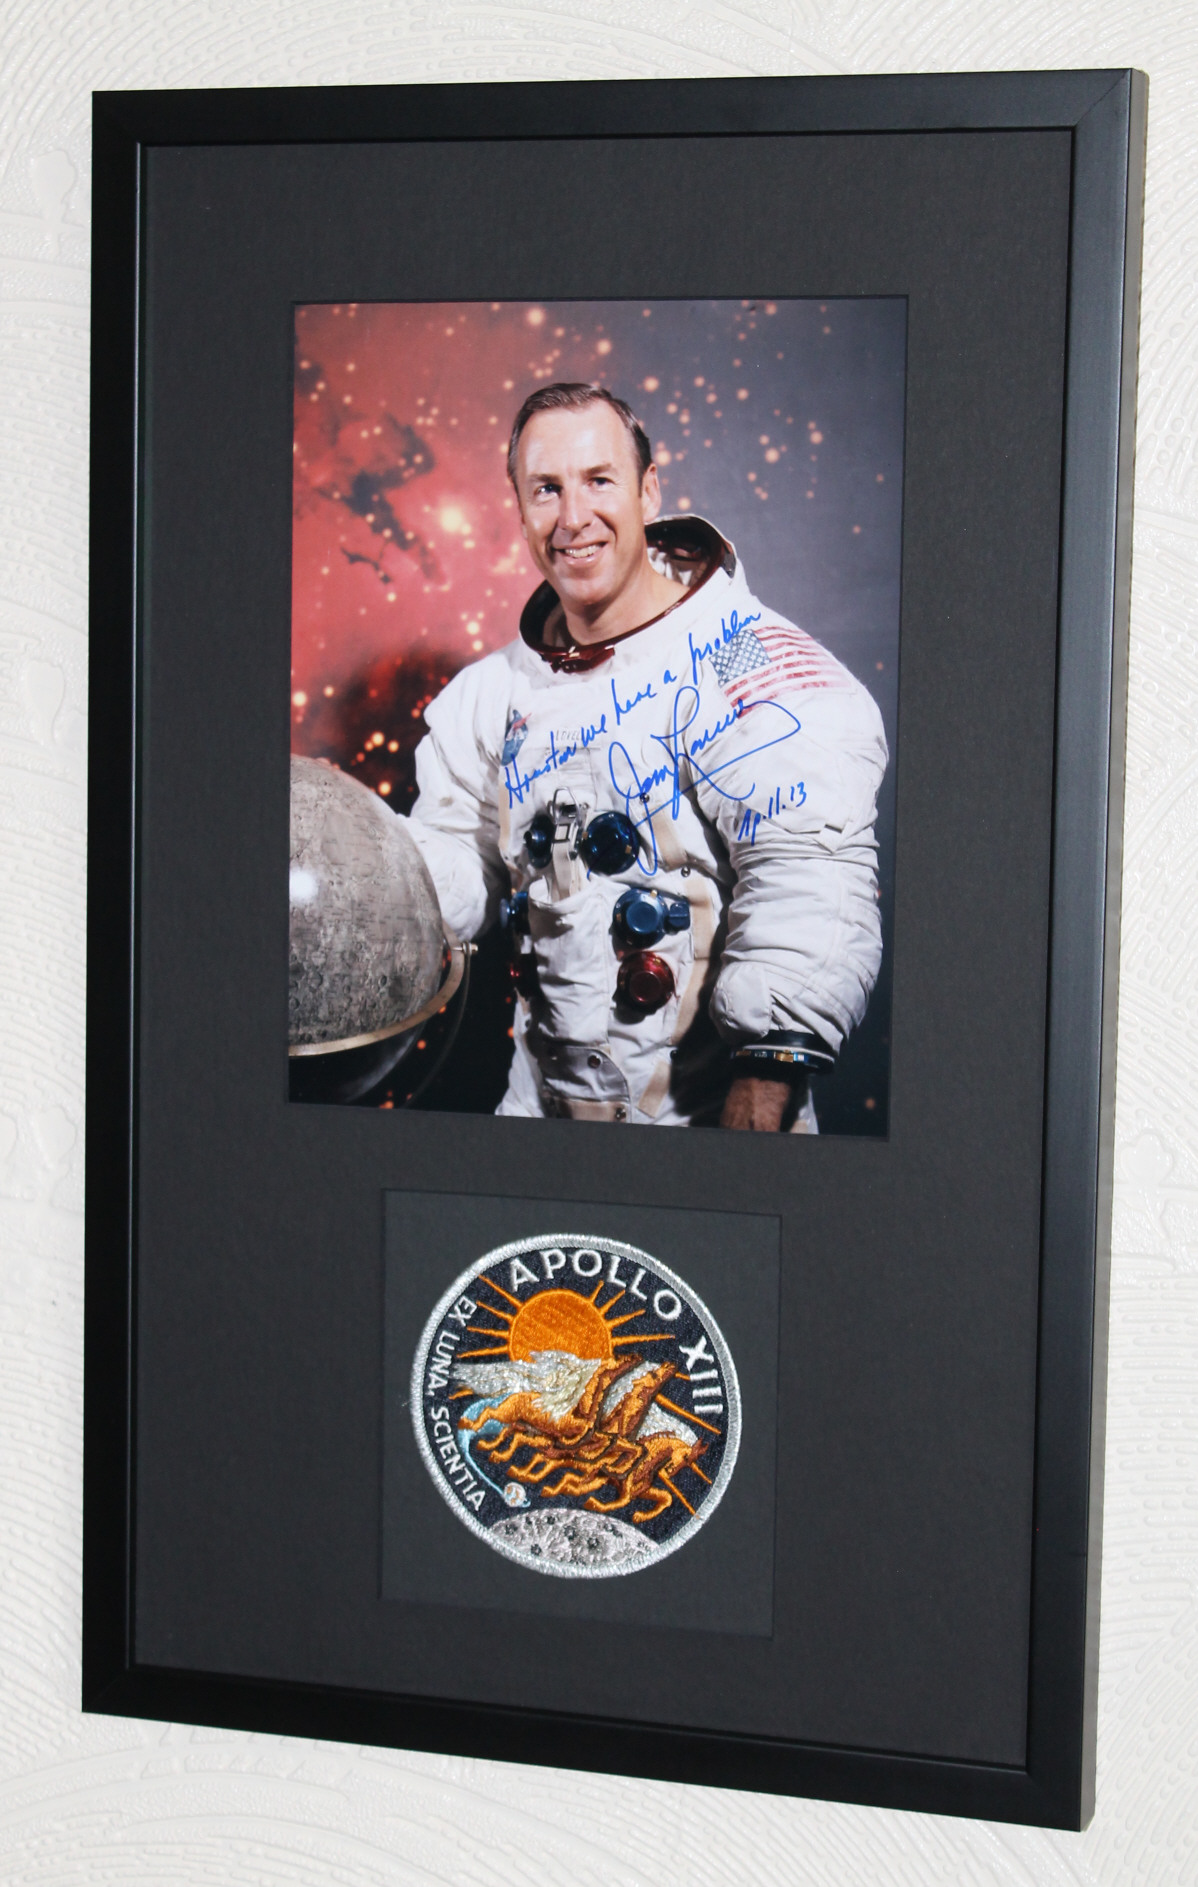 Framed Apollo 13 photo signed by Commander James Jim Lovell